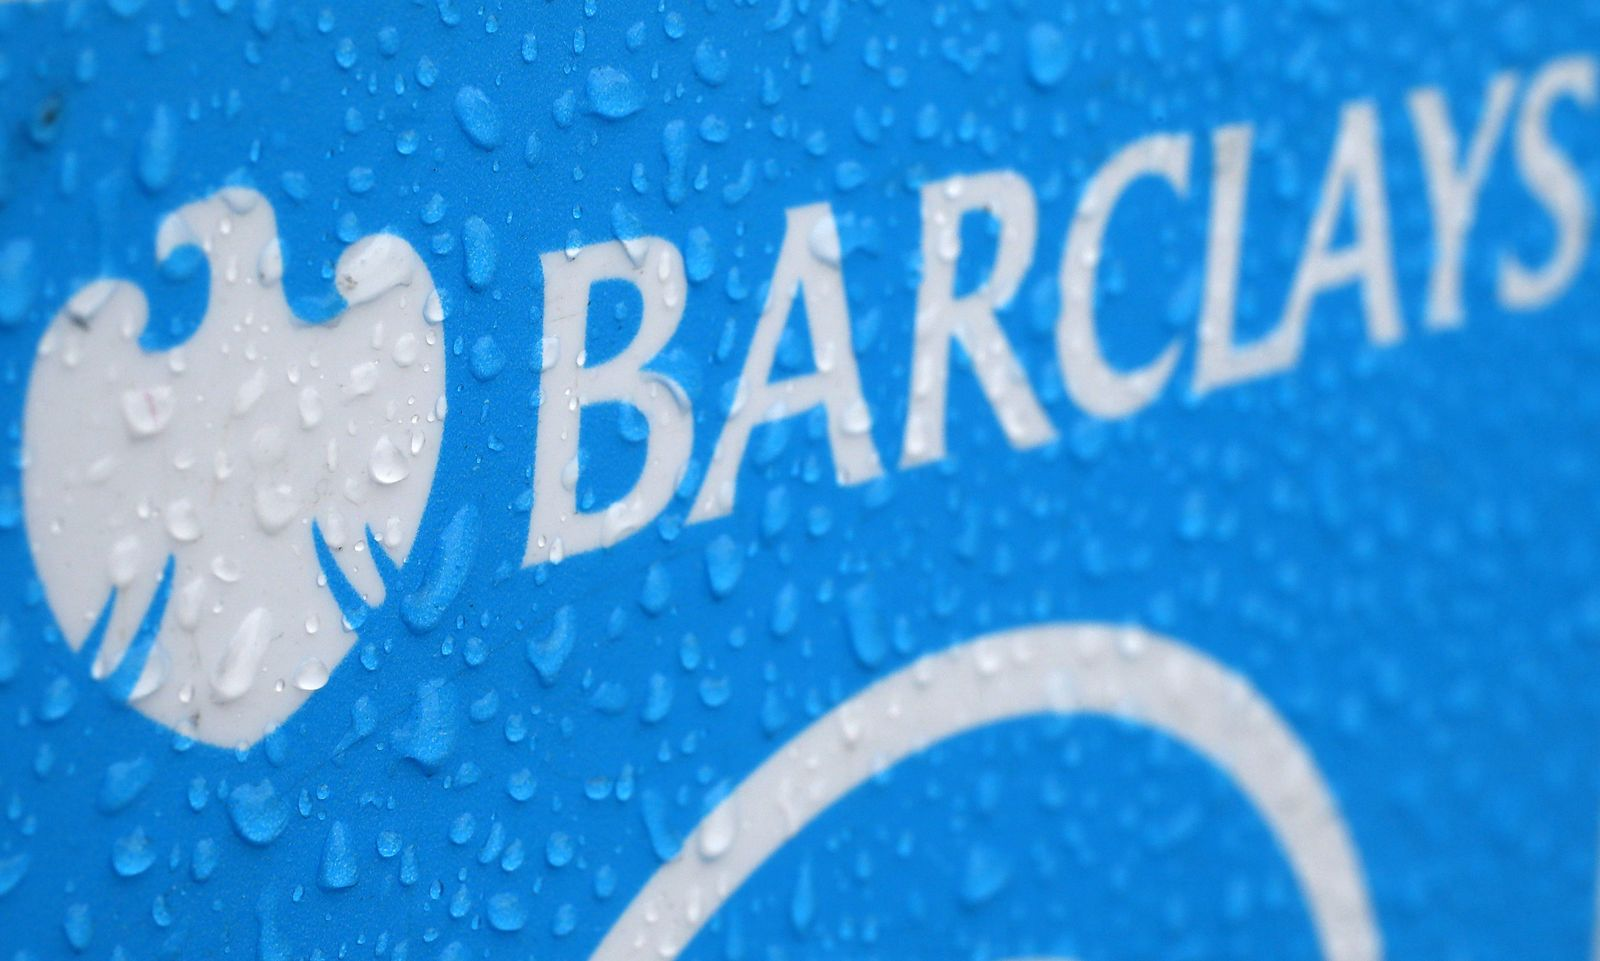 BARCLAYS-RESTRUCTURING/